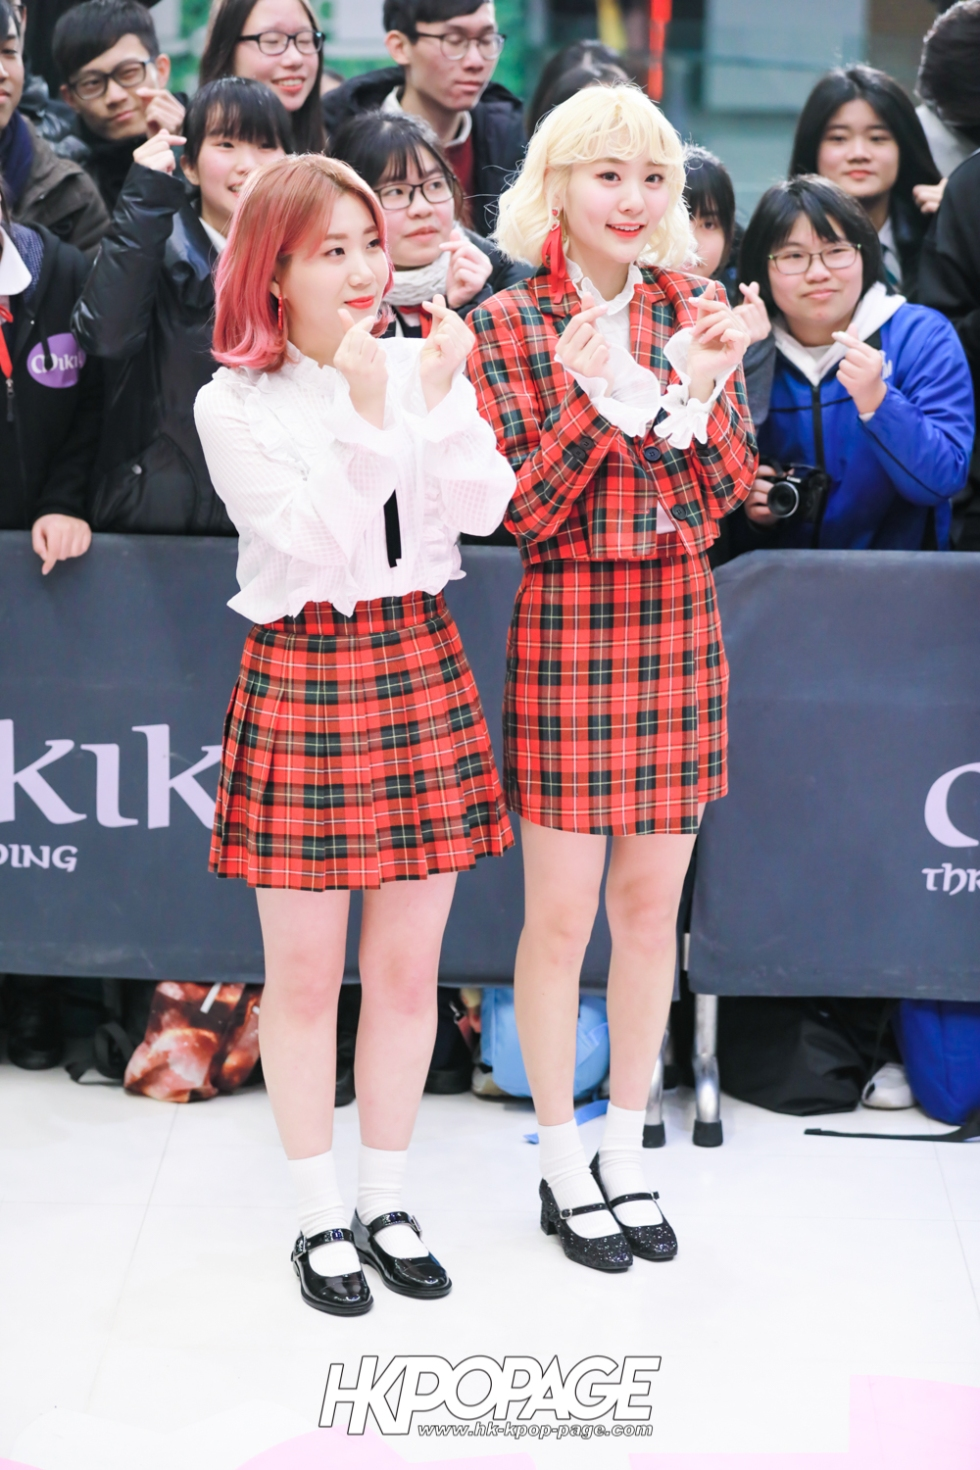 [HK.KPOP.PAGE] 180202_Mikiki x BOL4 Concert in Hong Kong Press Conference_04